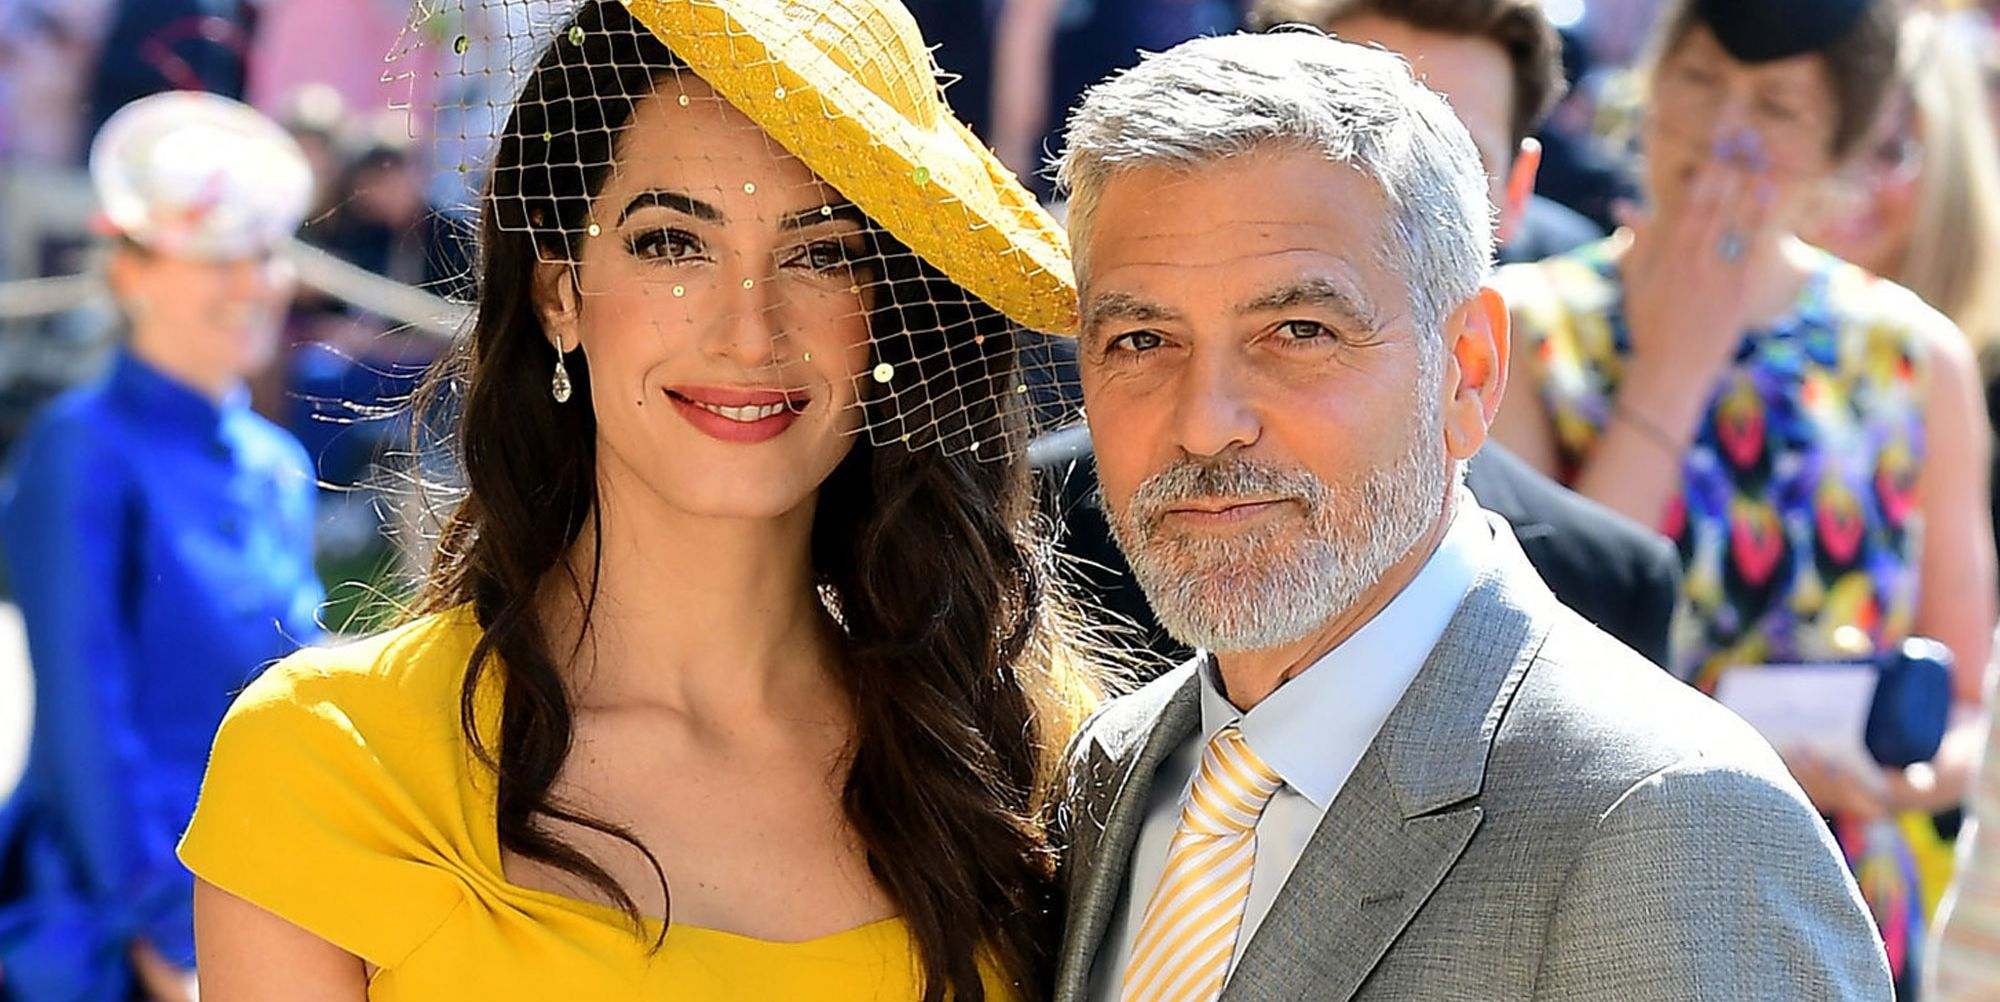 Image result for MEGHAN MARKLE GEORGE CLOONEY